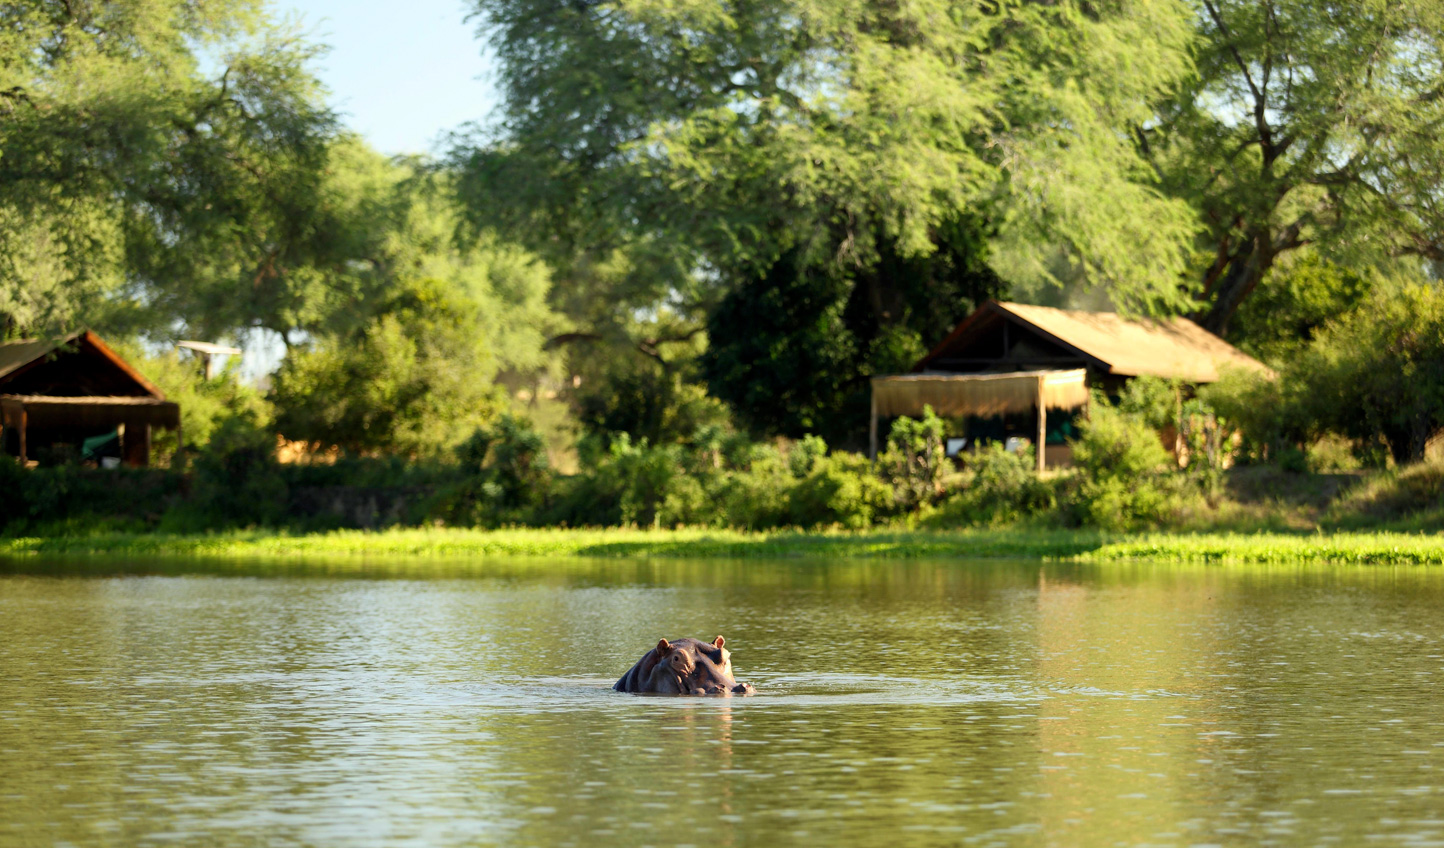 Spot hippos peering above the water